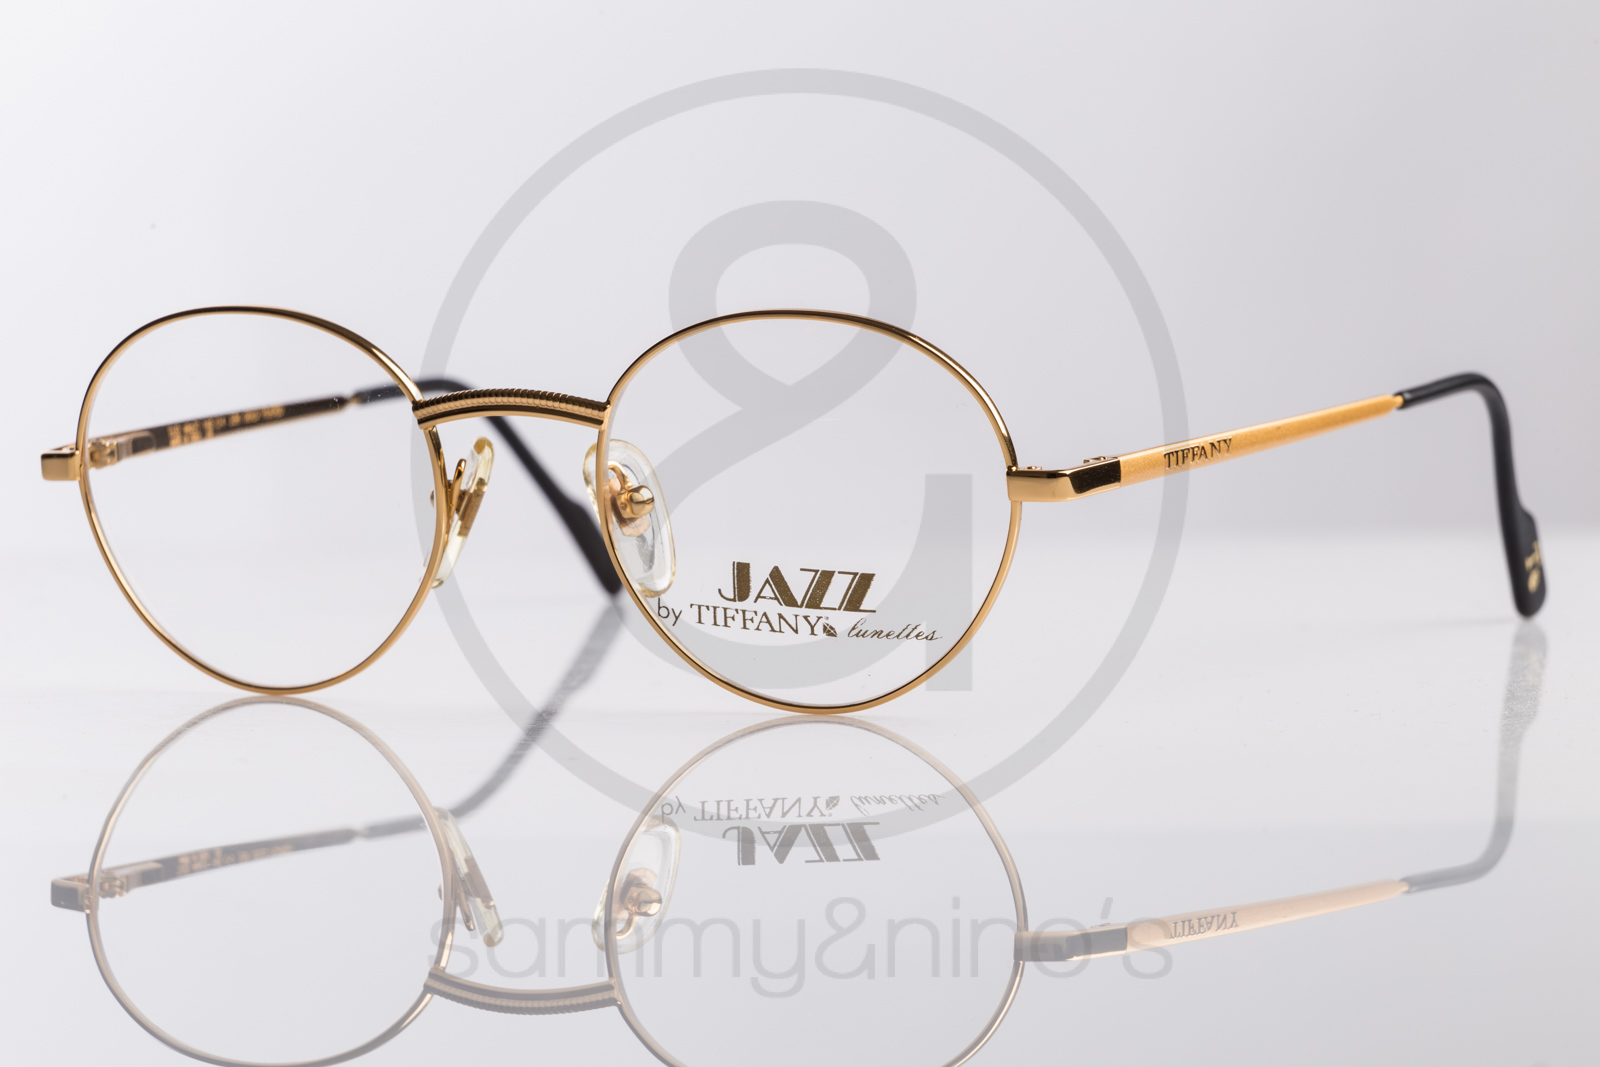 Dorable Tiffany Eyeglass Frames 2035 Model - Framed Art Ideas ...